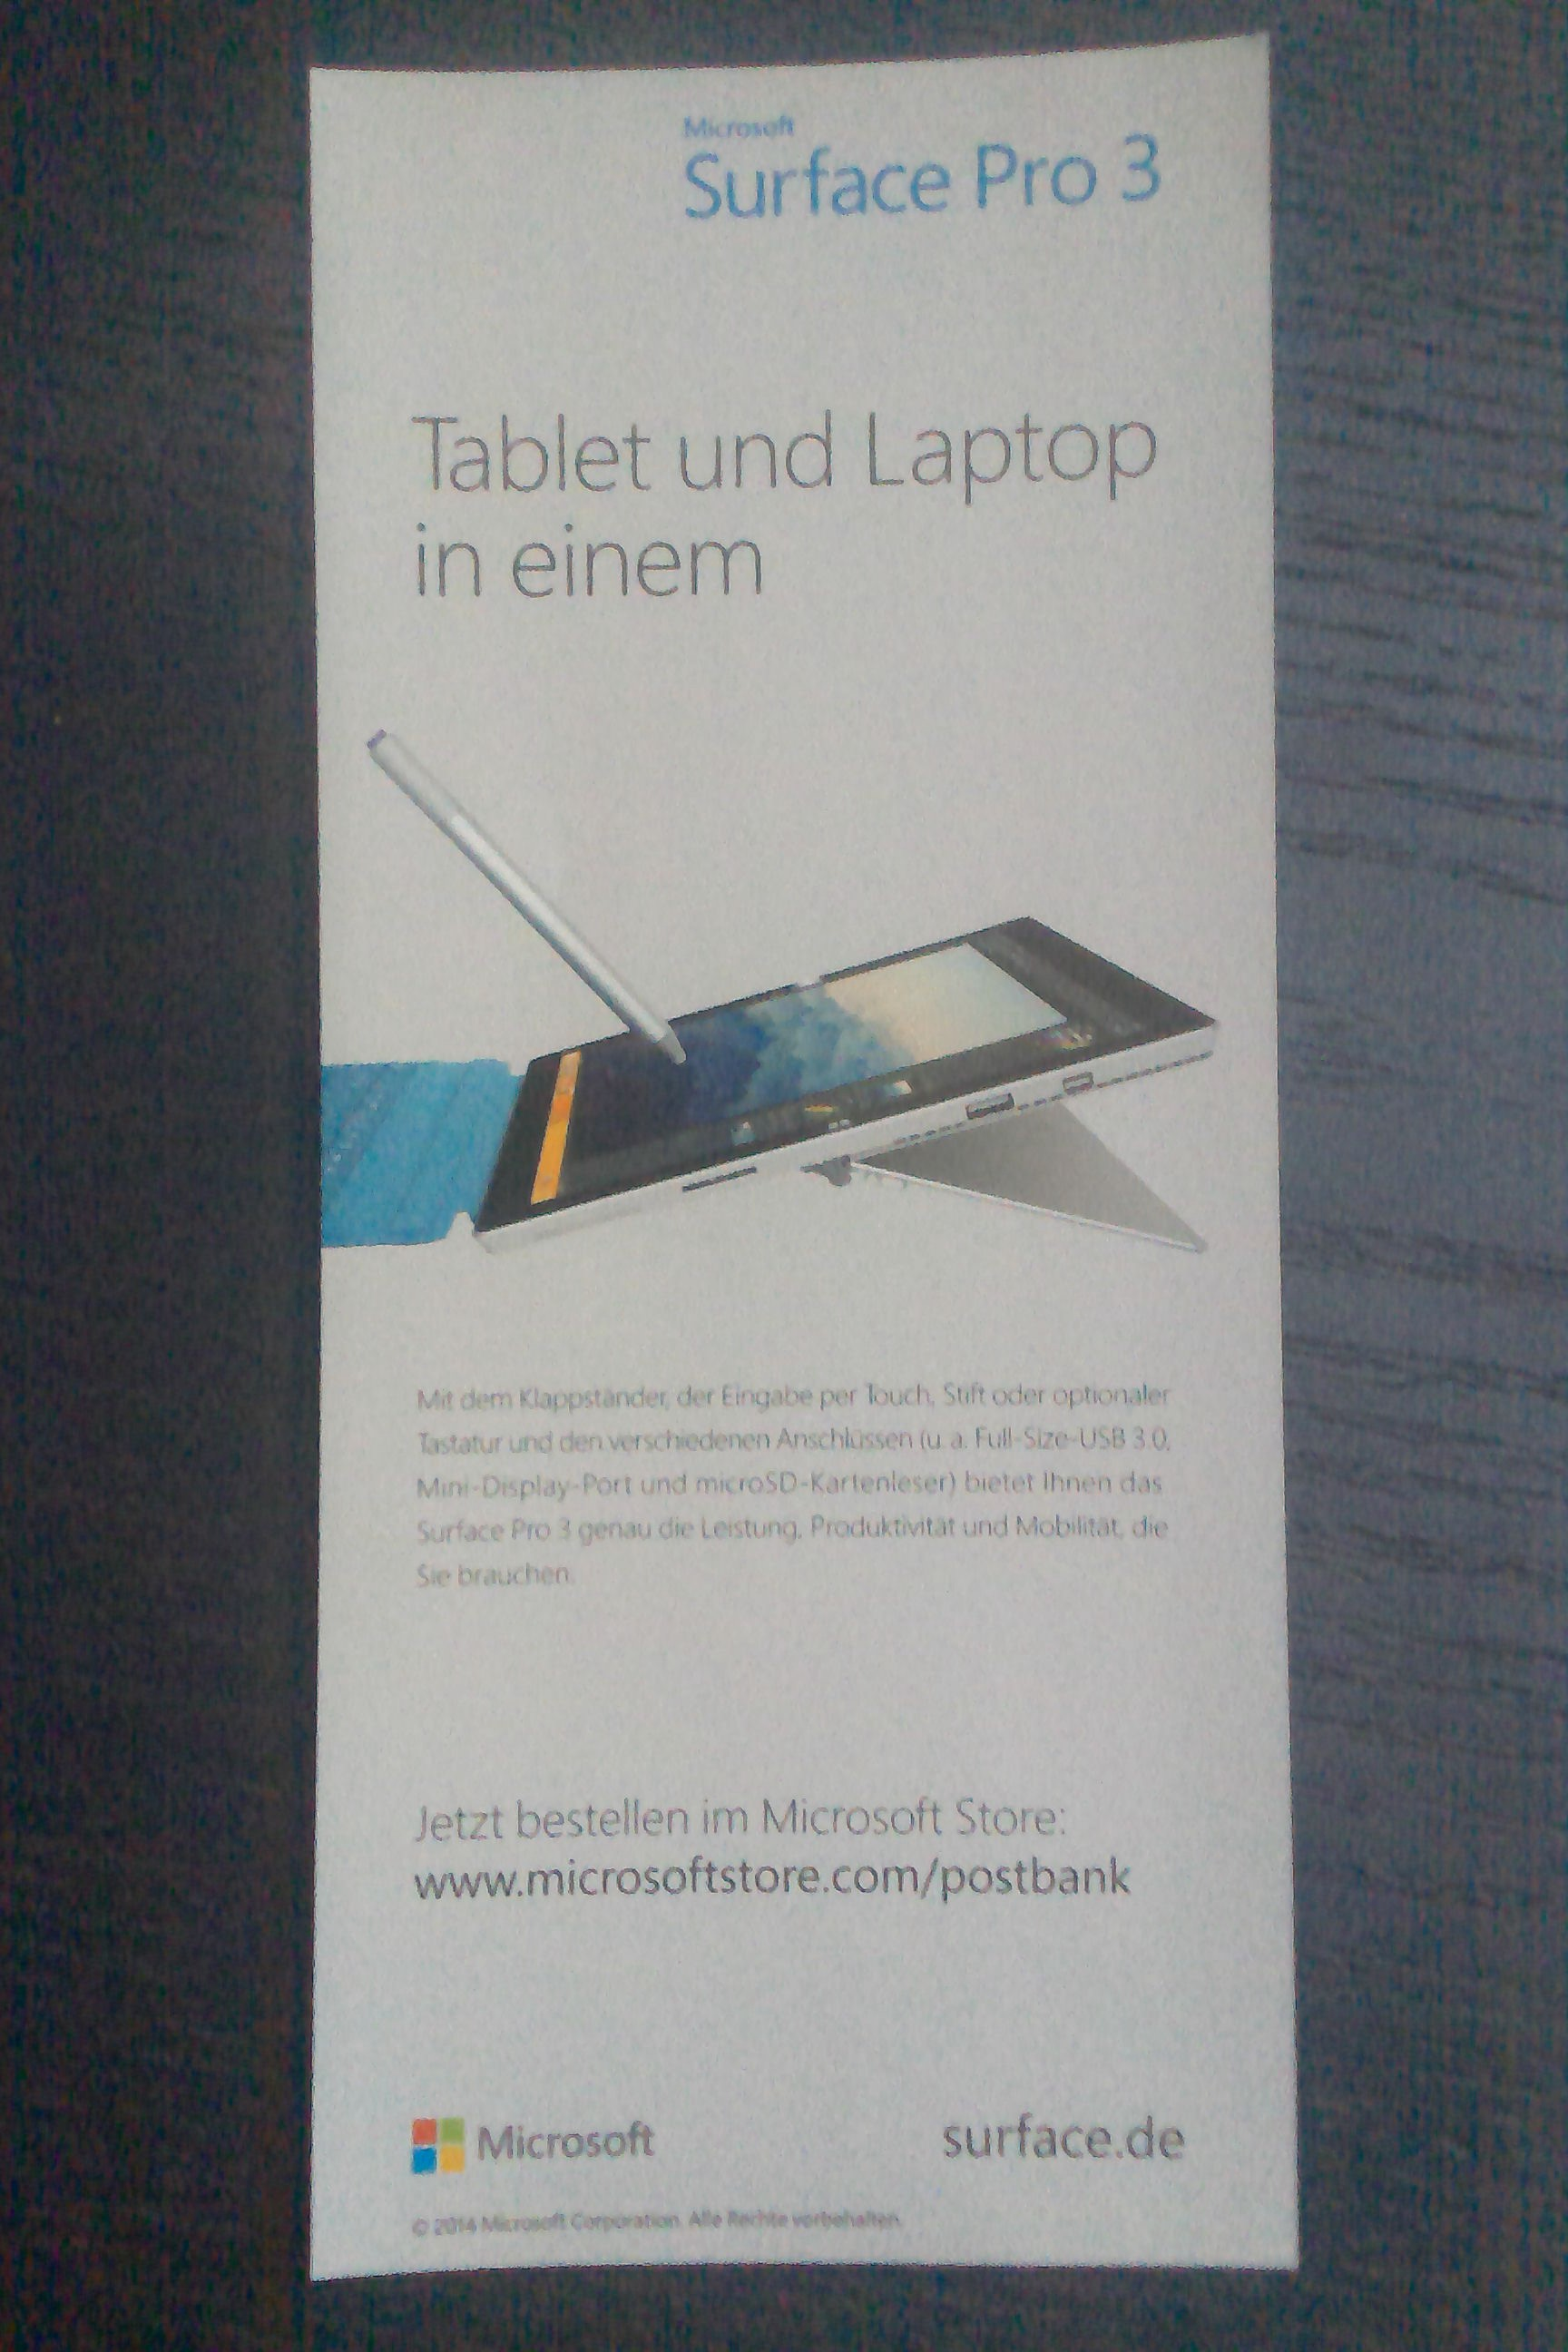 SurfacePro3-Bild1 mitt Brille